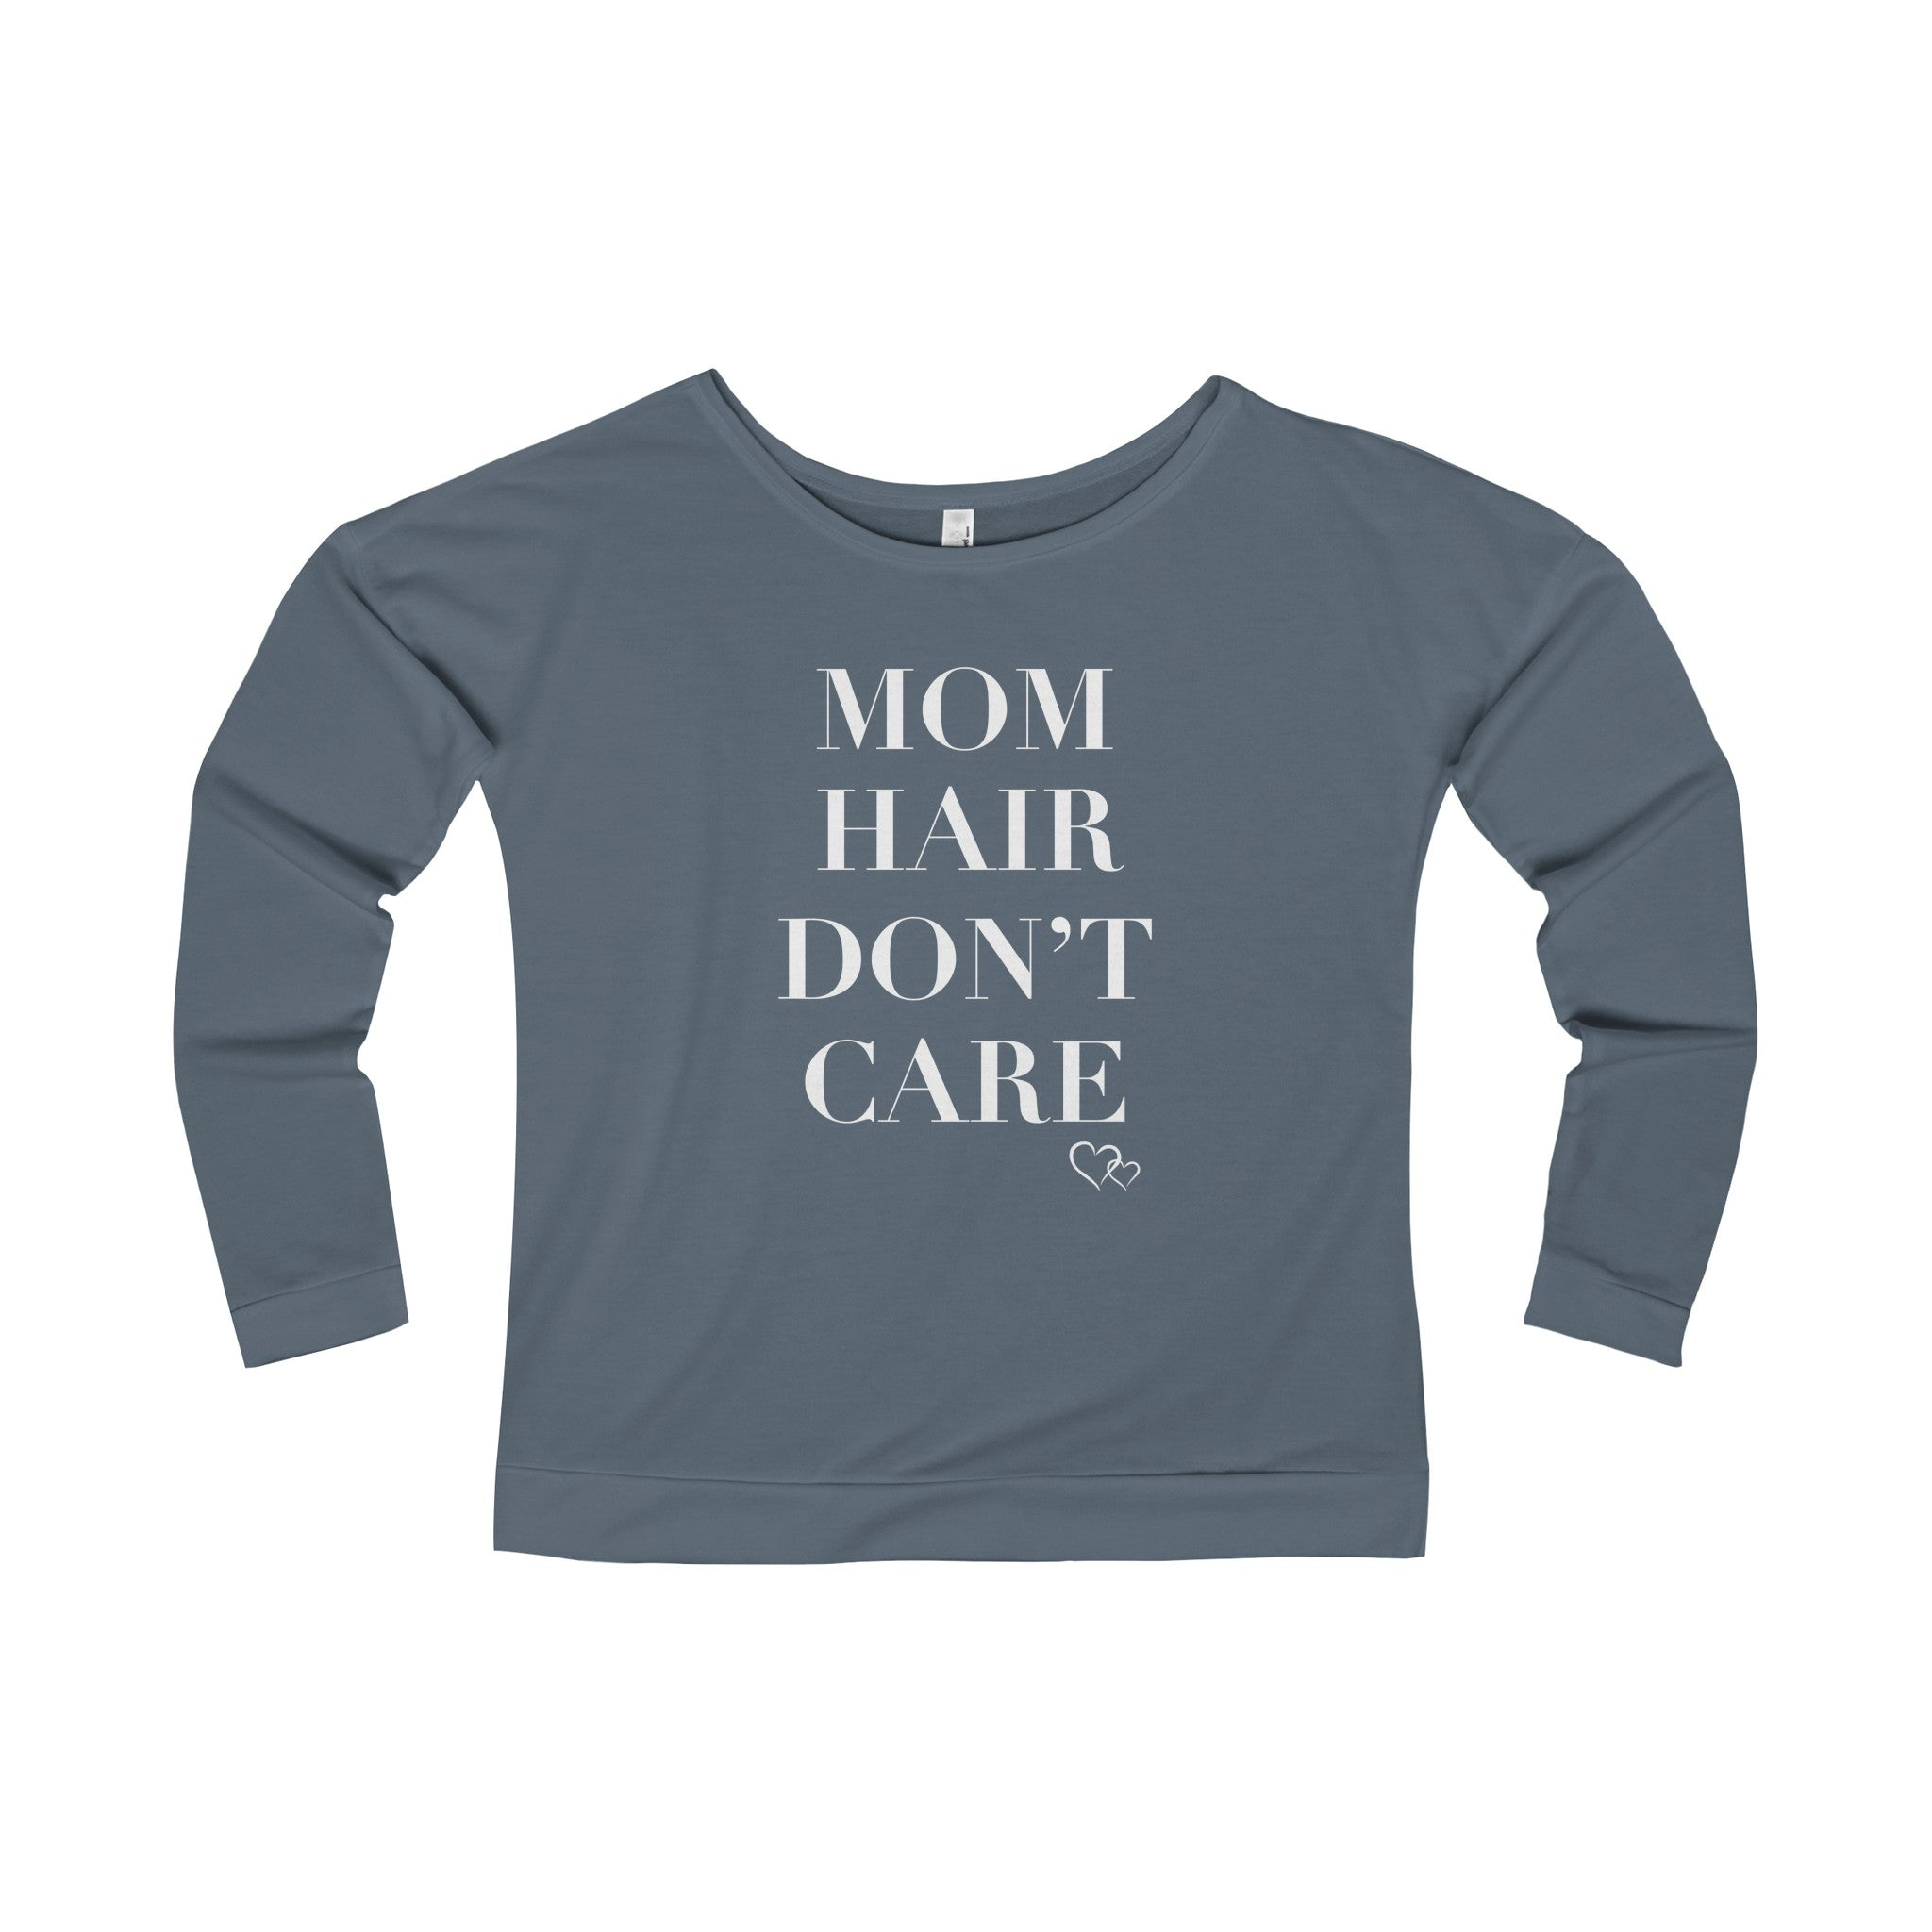 MOM HAIR DON'T CARE - Long Sleeve Scoop Terry T